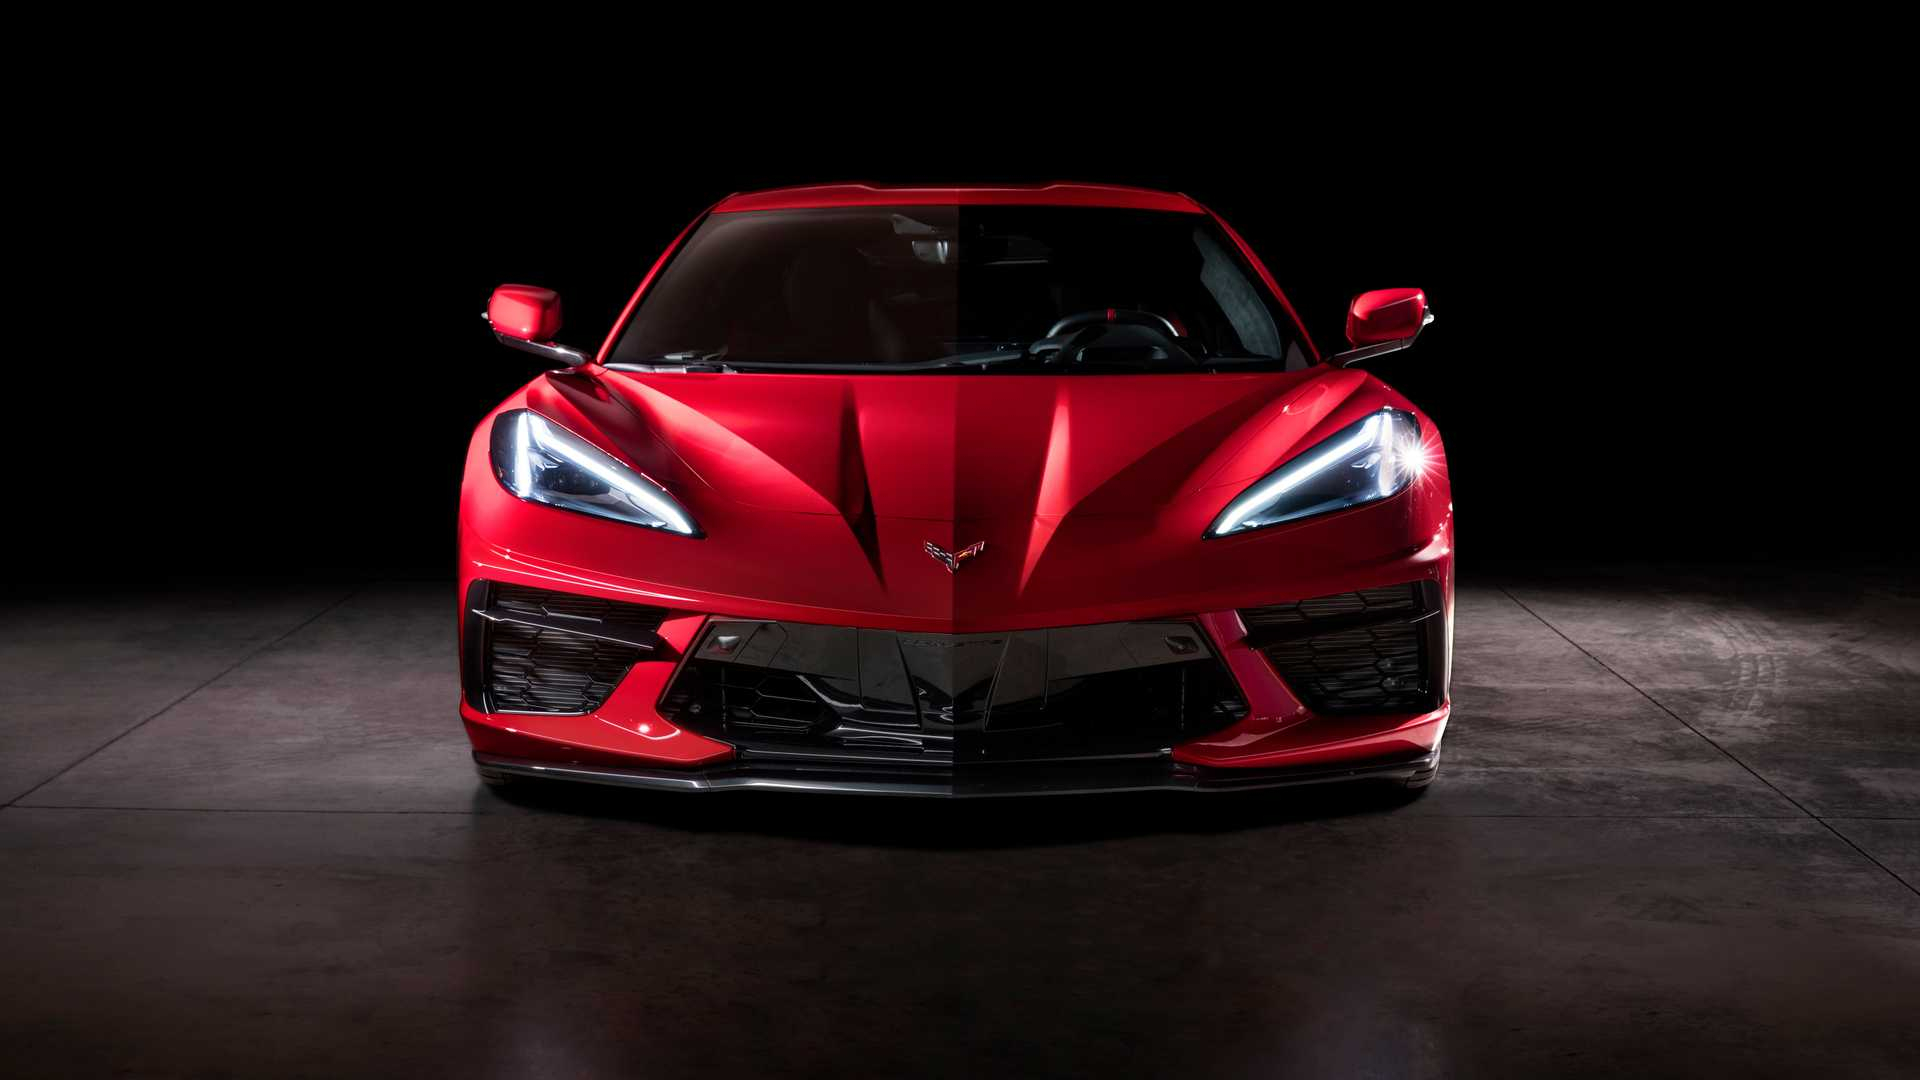 Corvette Z06 se očekuje s twin-turbo LT7 i 800 ks